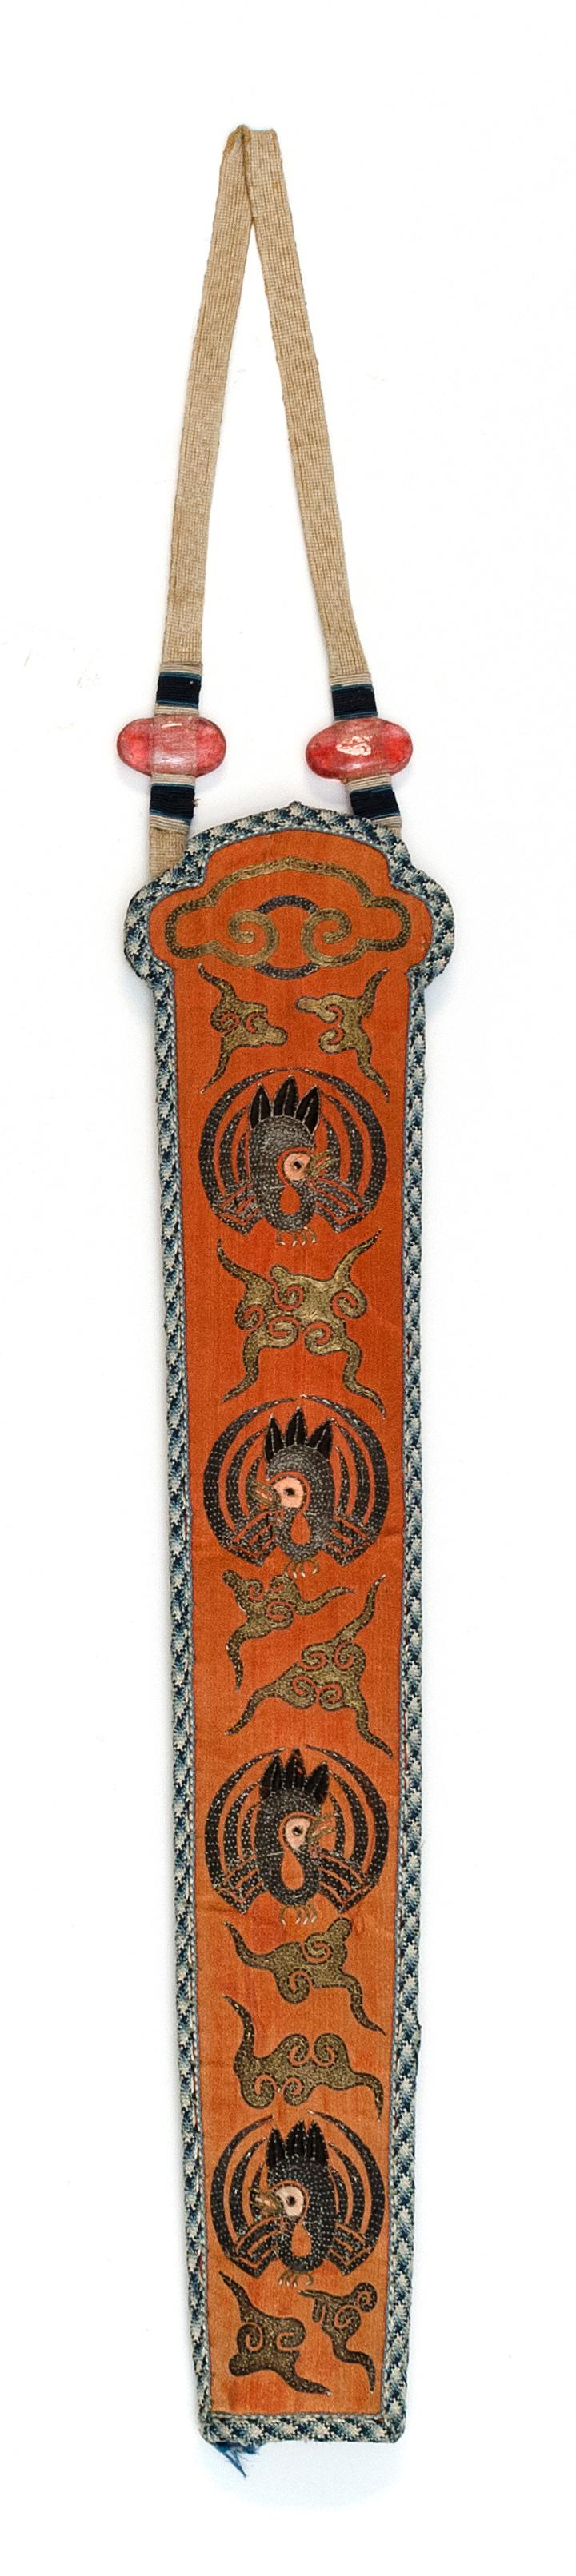 SILK NEEDLEWORK FAN CASE With crane and cloud design on a salmon ground. Length 12.6